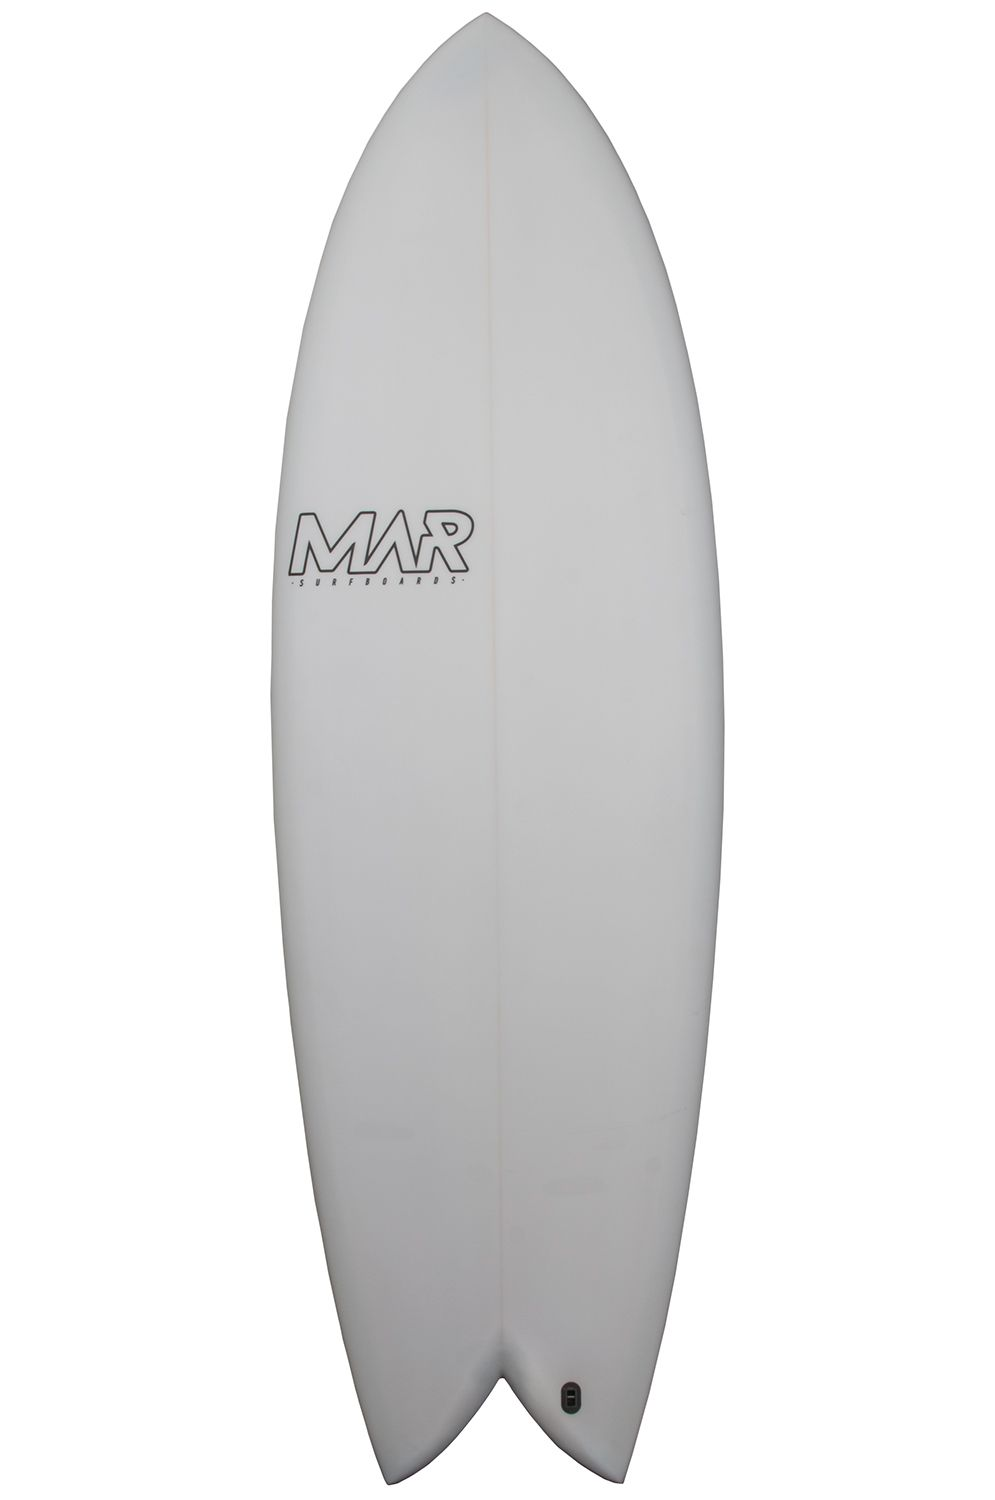 Mar Surf Board 6'0 THE 2 BLUE Fish Tail - Color FCS II Twin Tab 6ft0